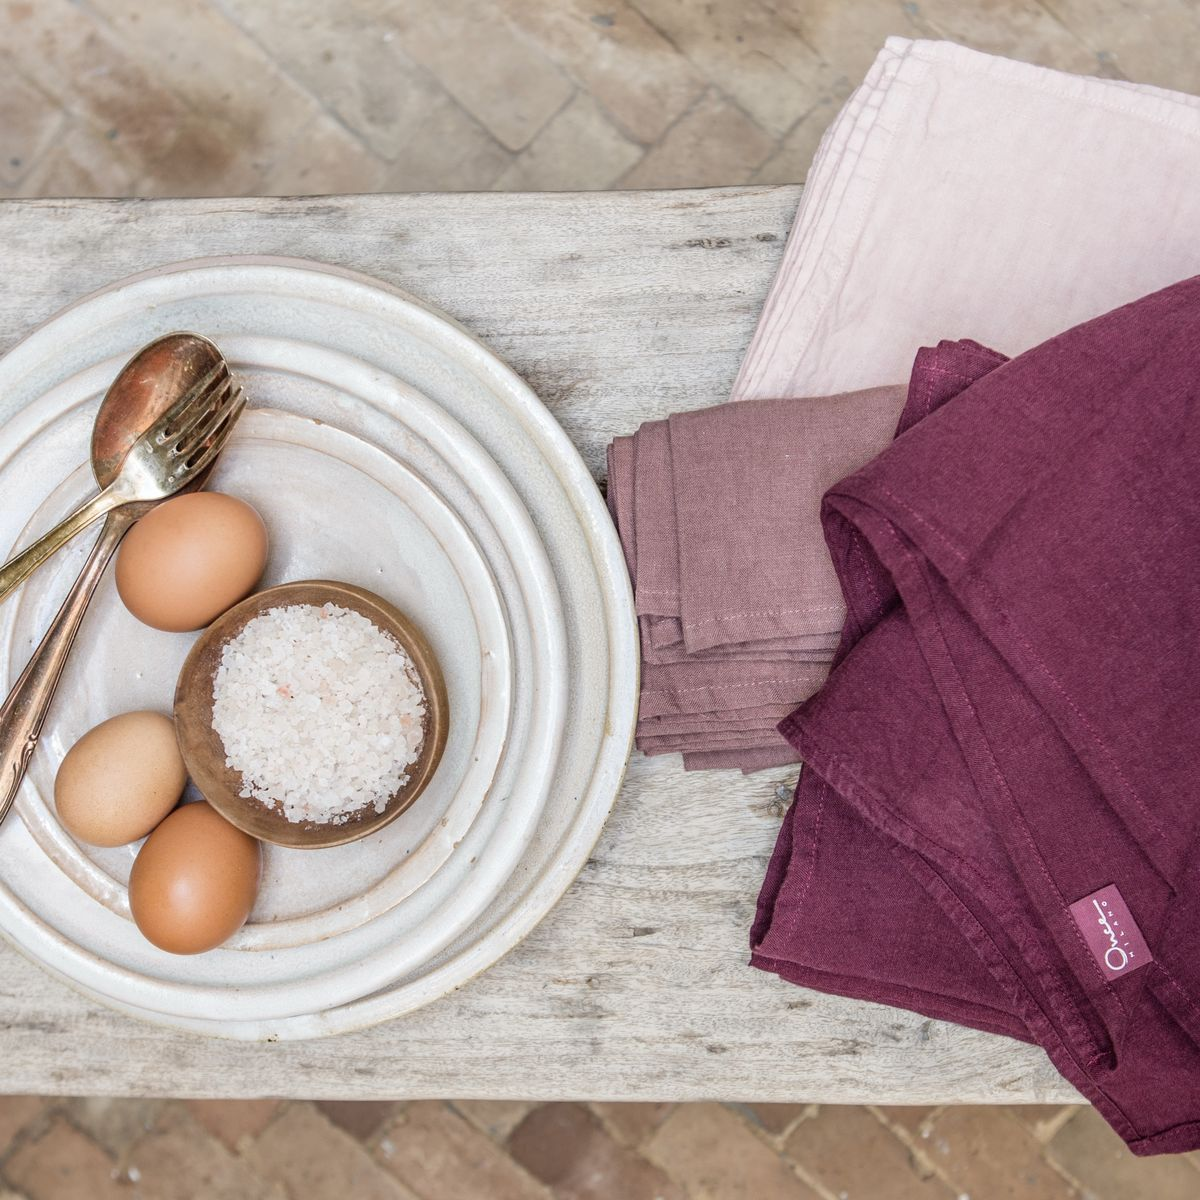 Linen Napkins Medium Weight (set of 2) - product images  of